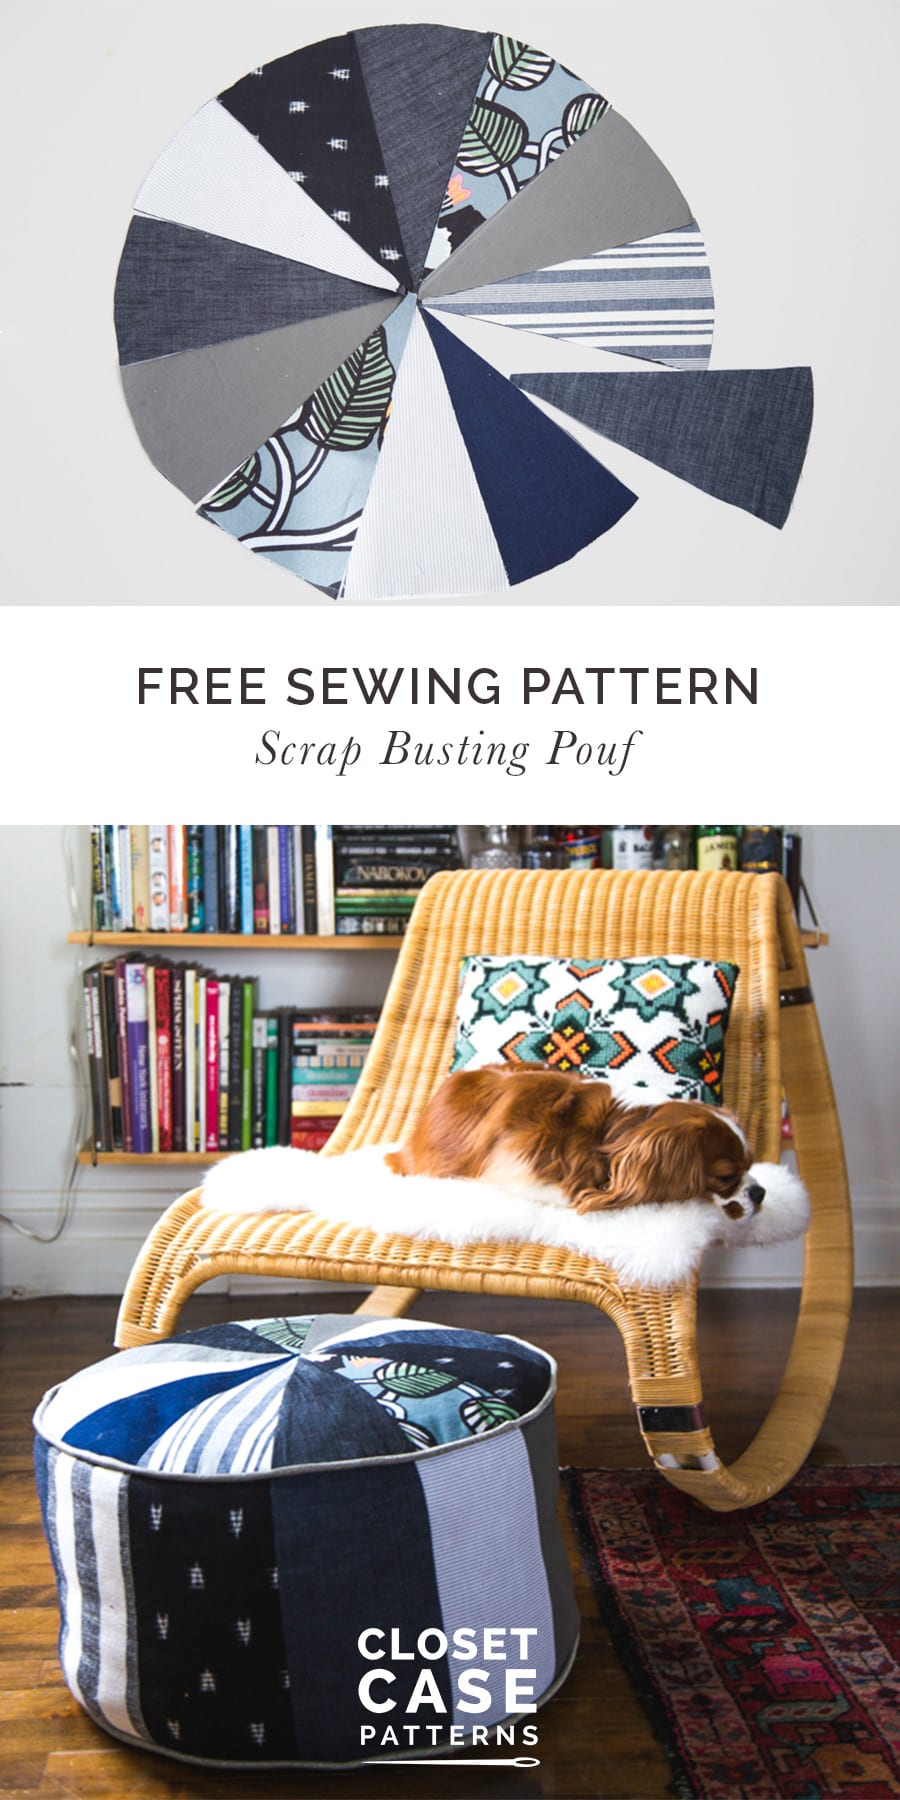 Free Sewing Pattern // Scrap Busting Pouf // Closet Case Patterns